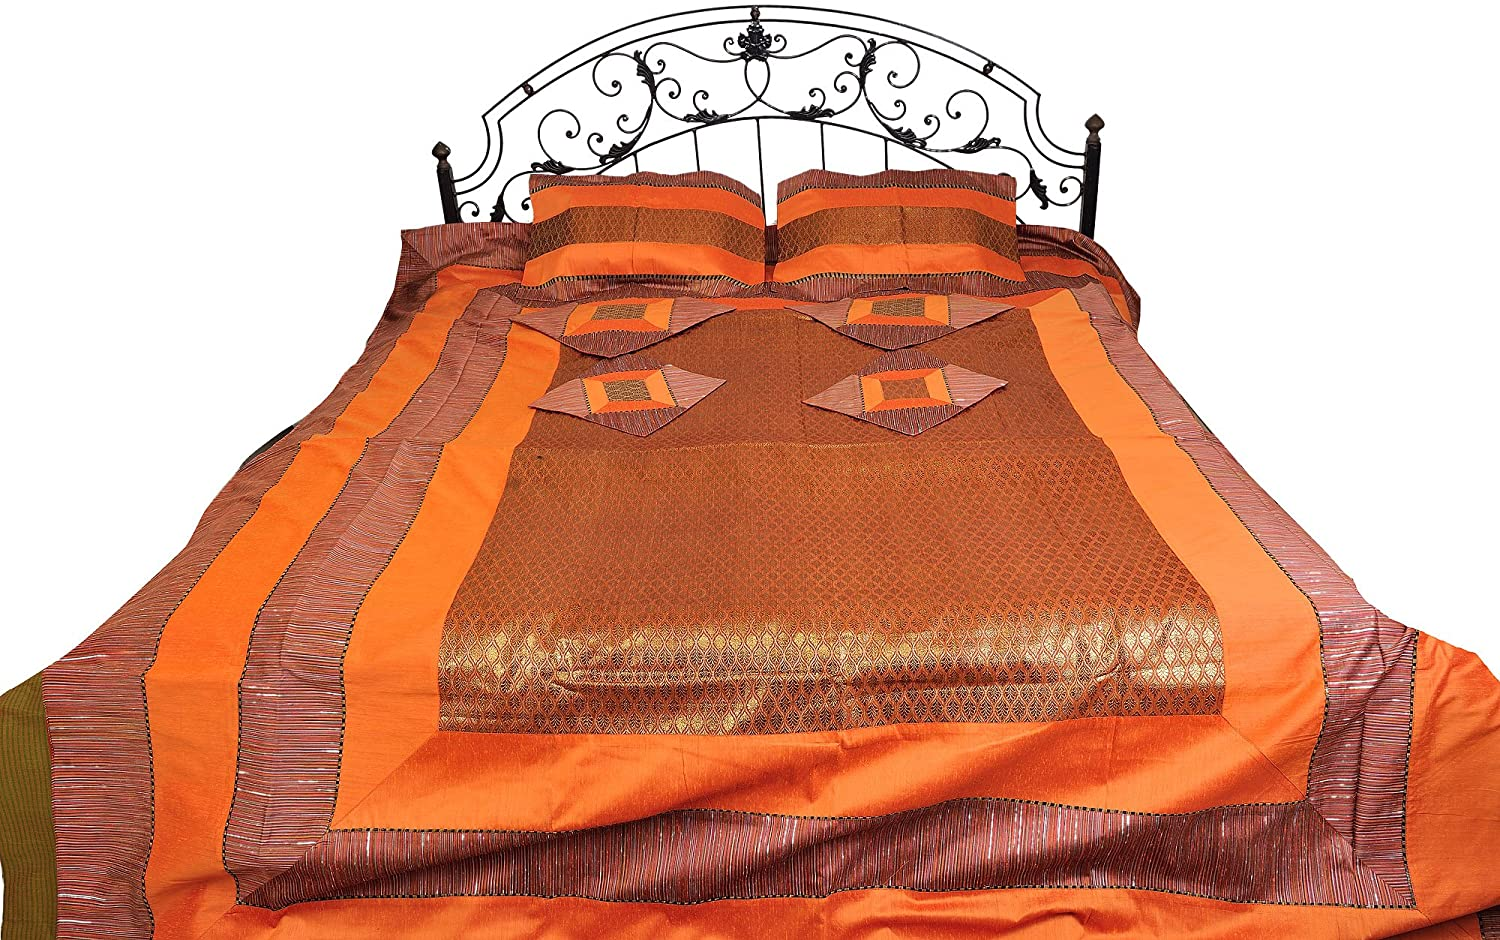 Exotic India Seven-Piece Banarasi Bedspread with Brocade Weave - Art Silk with Pillow Cases and Cushion Covers - Color Apricot Orange Color